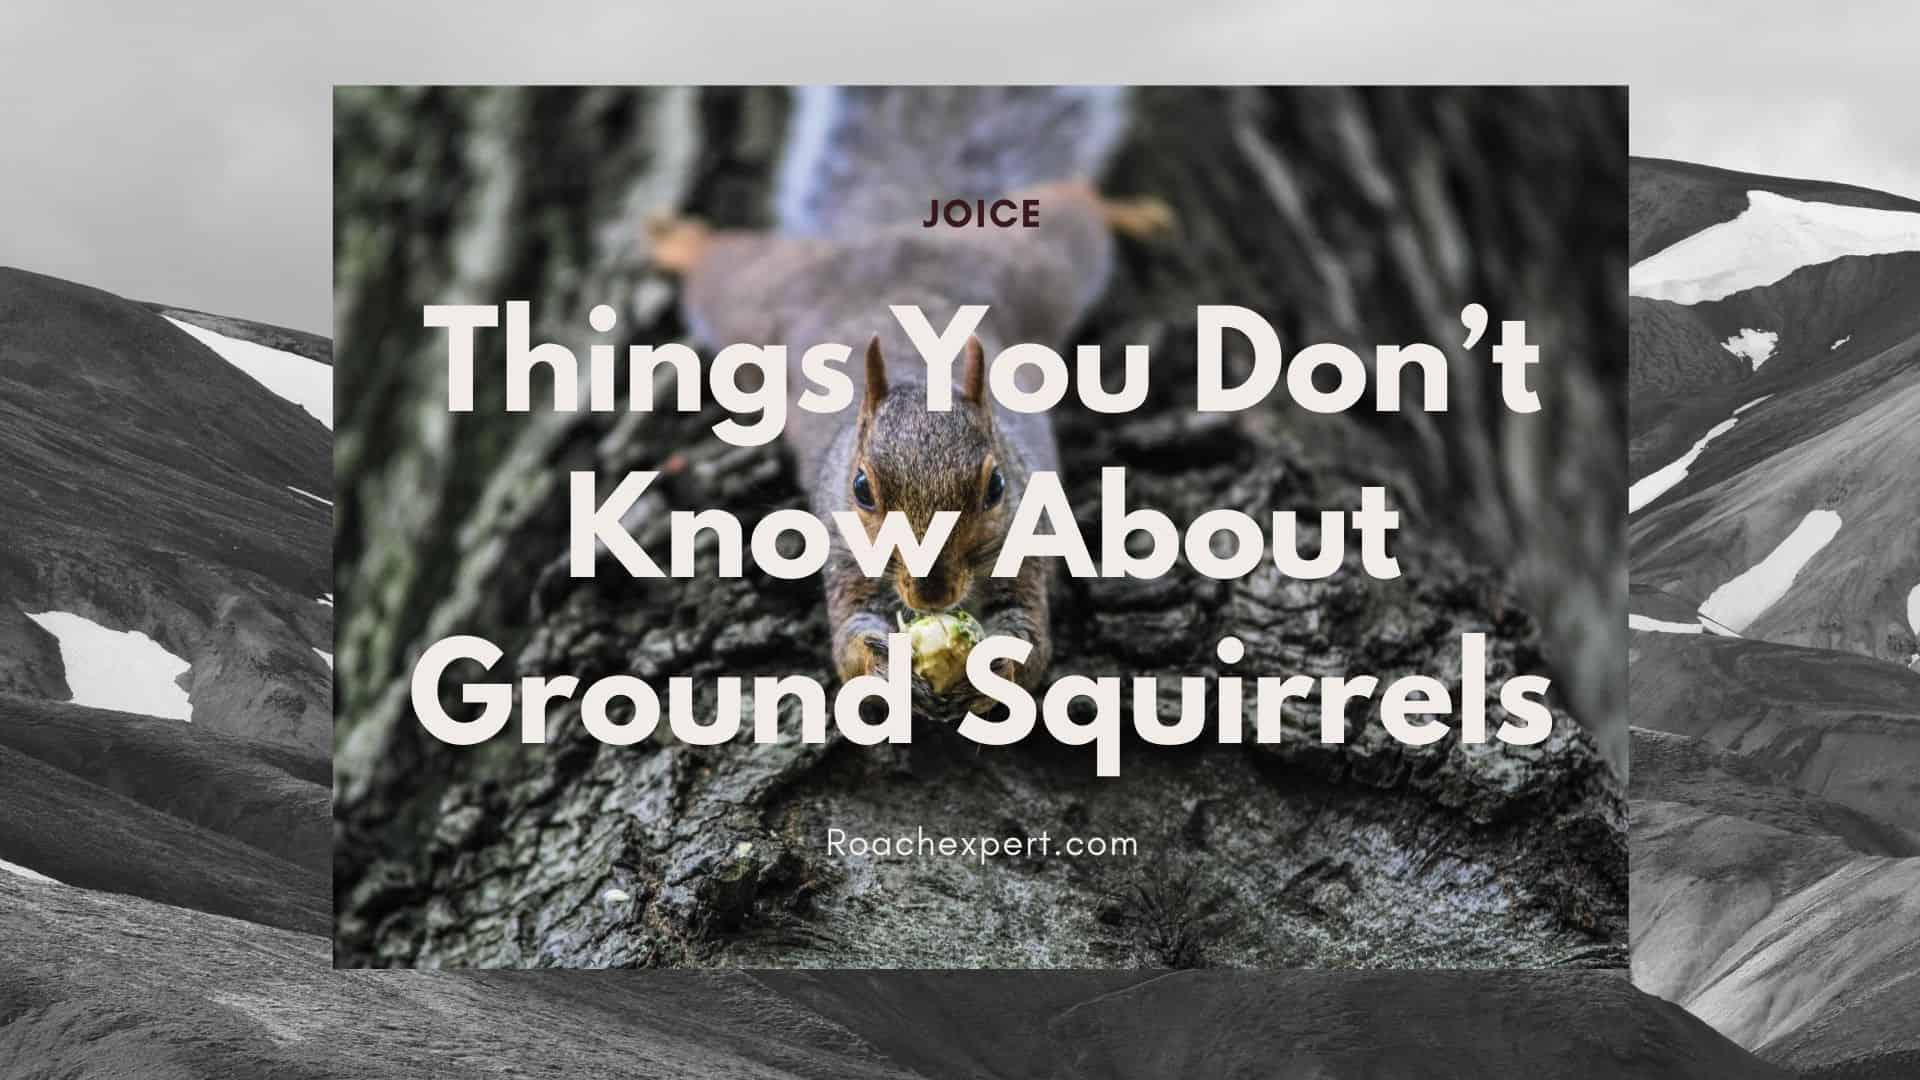 Things You Don't Know About Ground Squirrels (2)